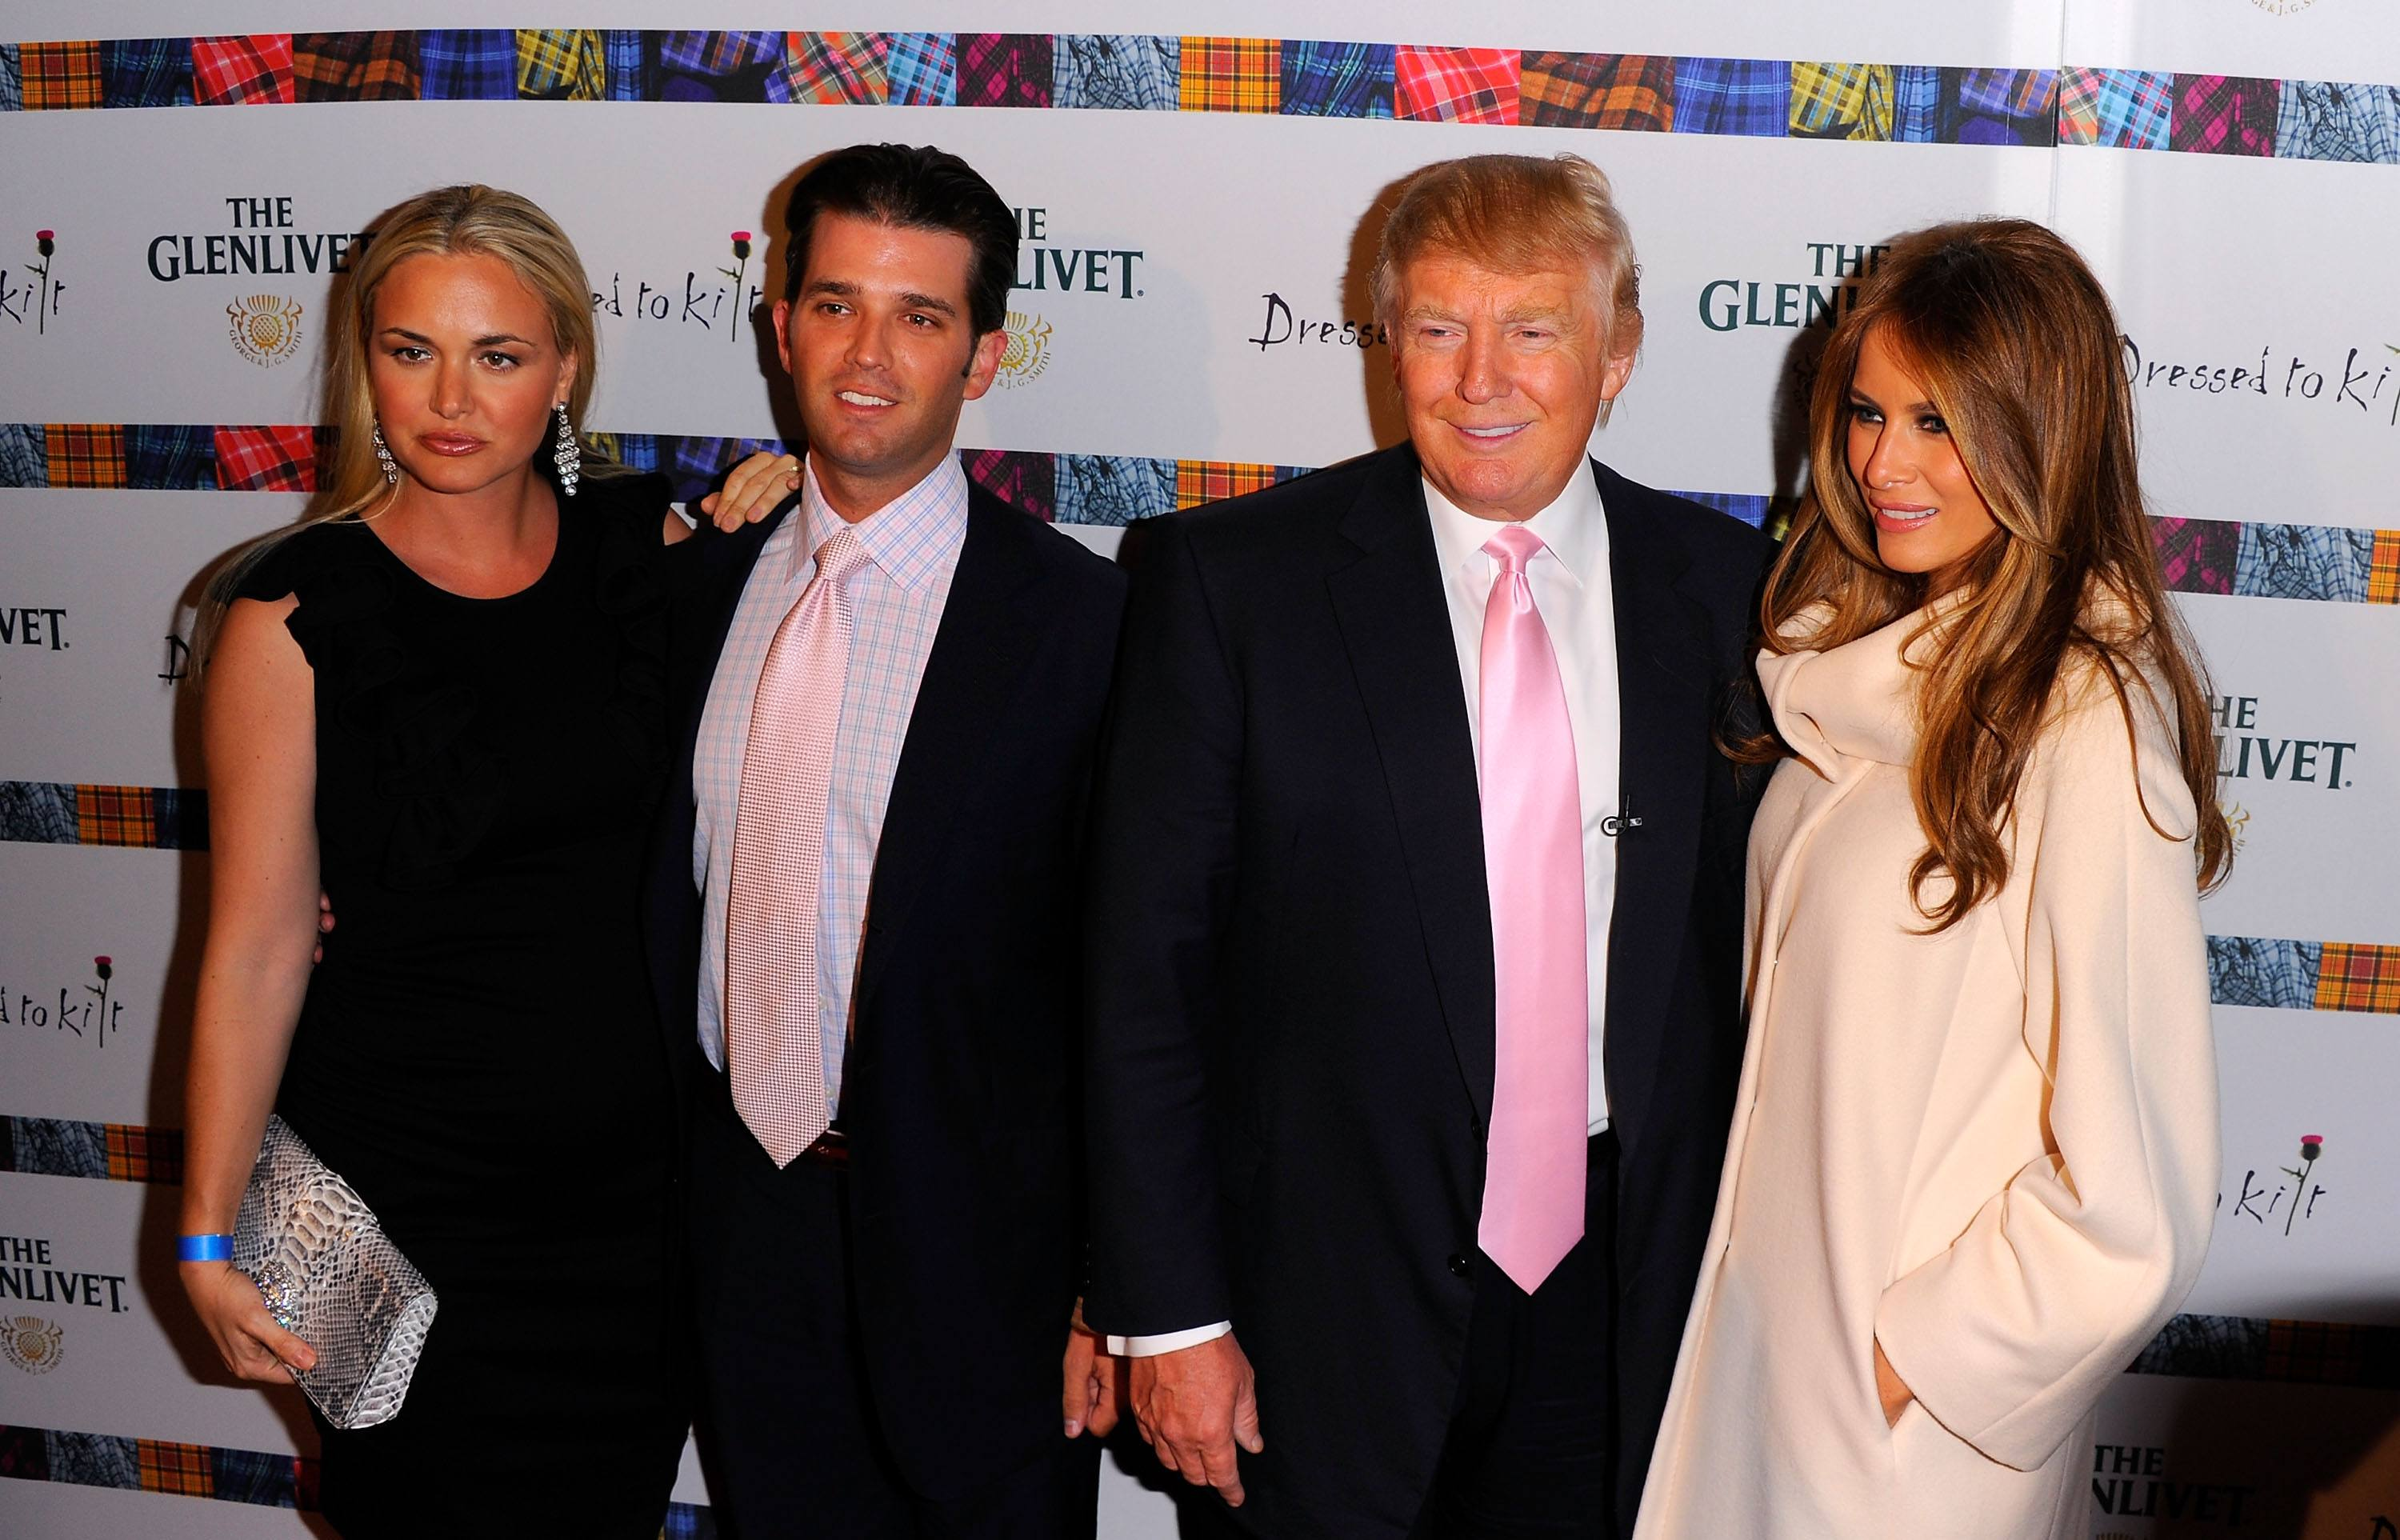 Vanessa Trump, Donald Trump Jr., Donald Trump and Melania Trump